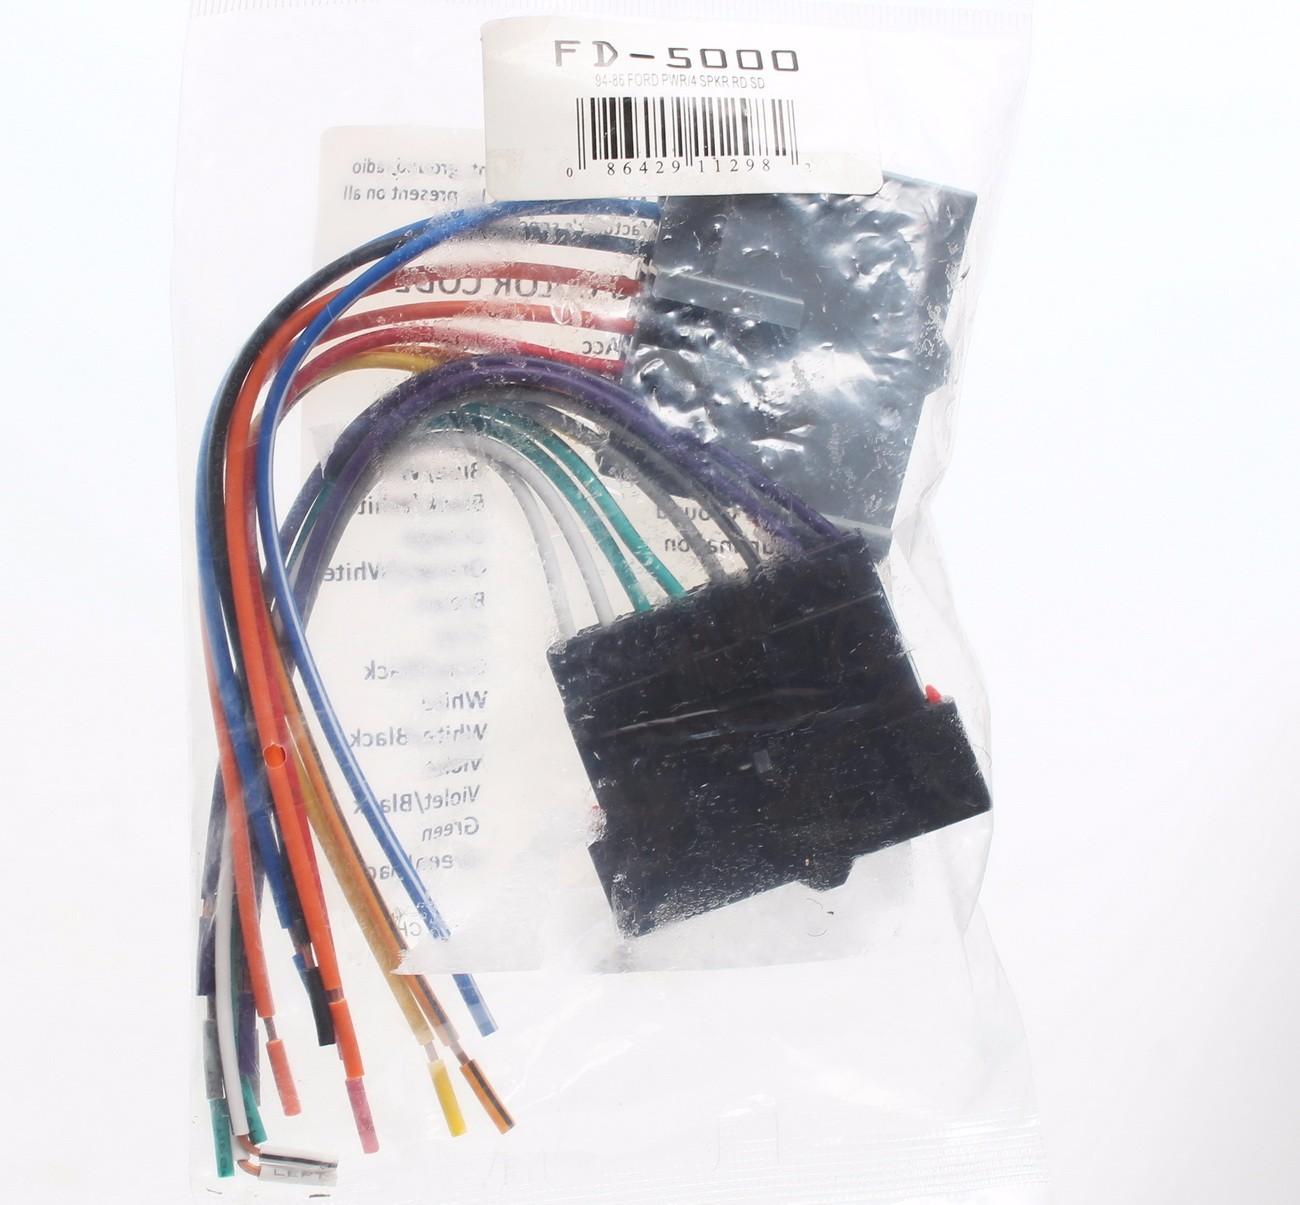 details about radio wiring harness aftermarket stereo select ford metra  70-1770 fd-5000 ob